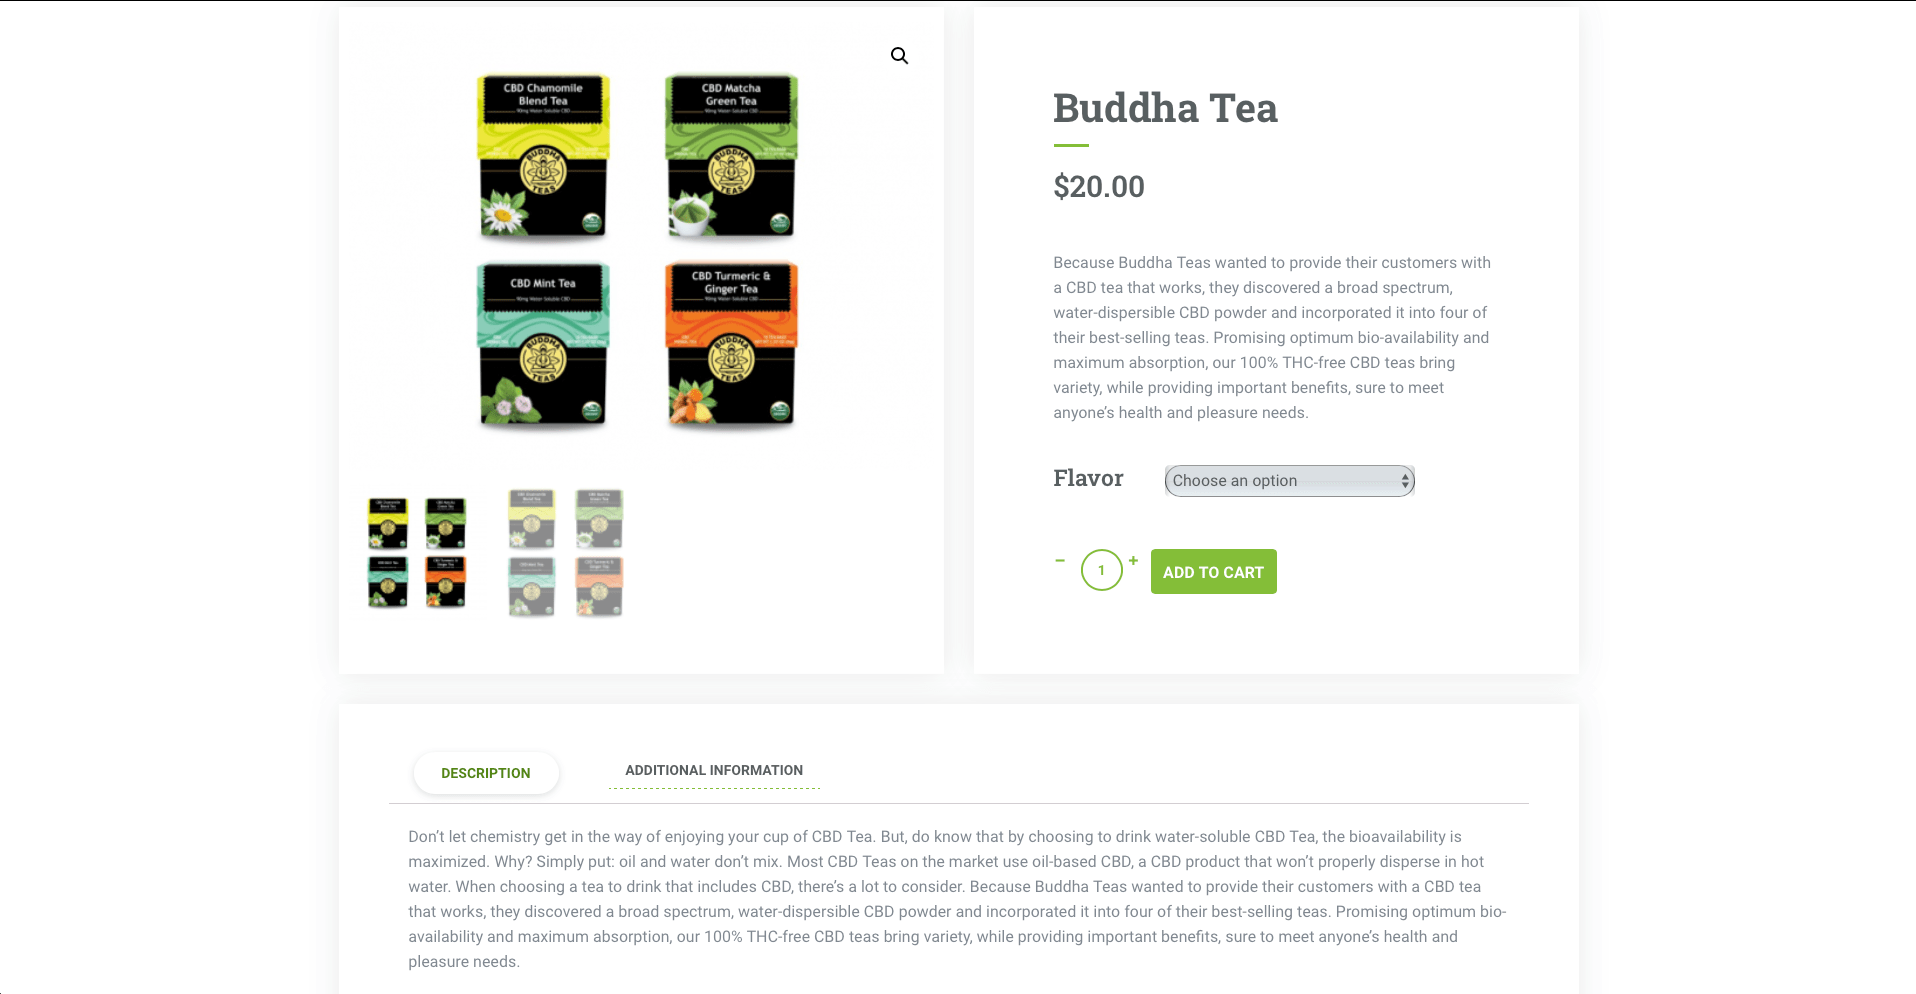 Product page from an e-commerce site designed by 2oddballs